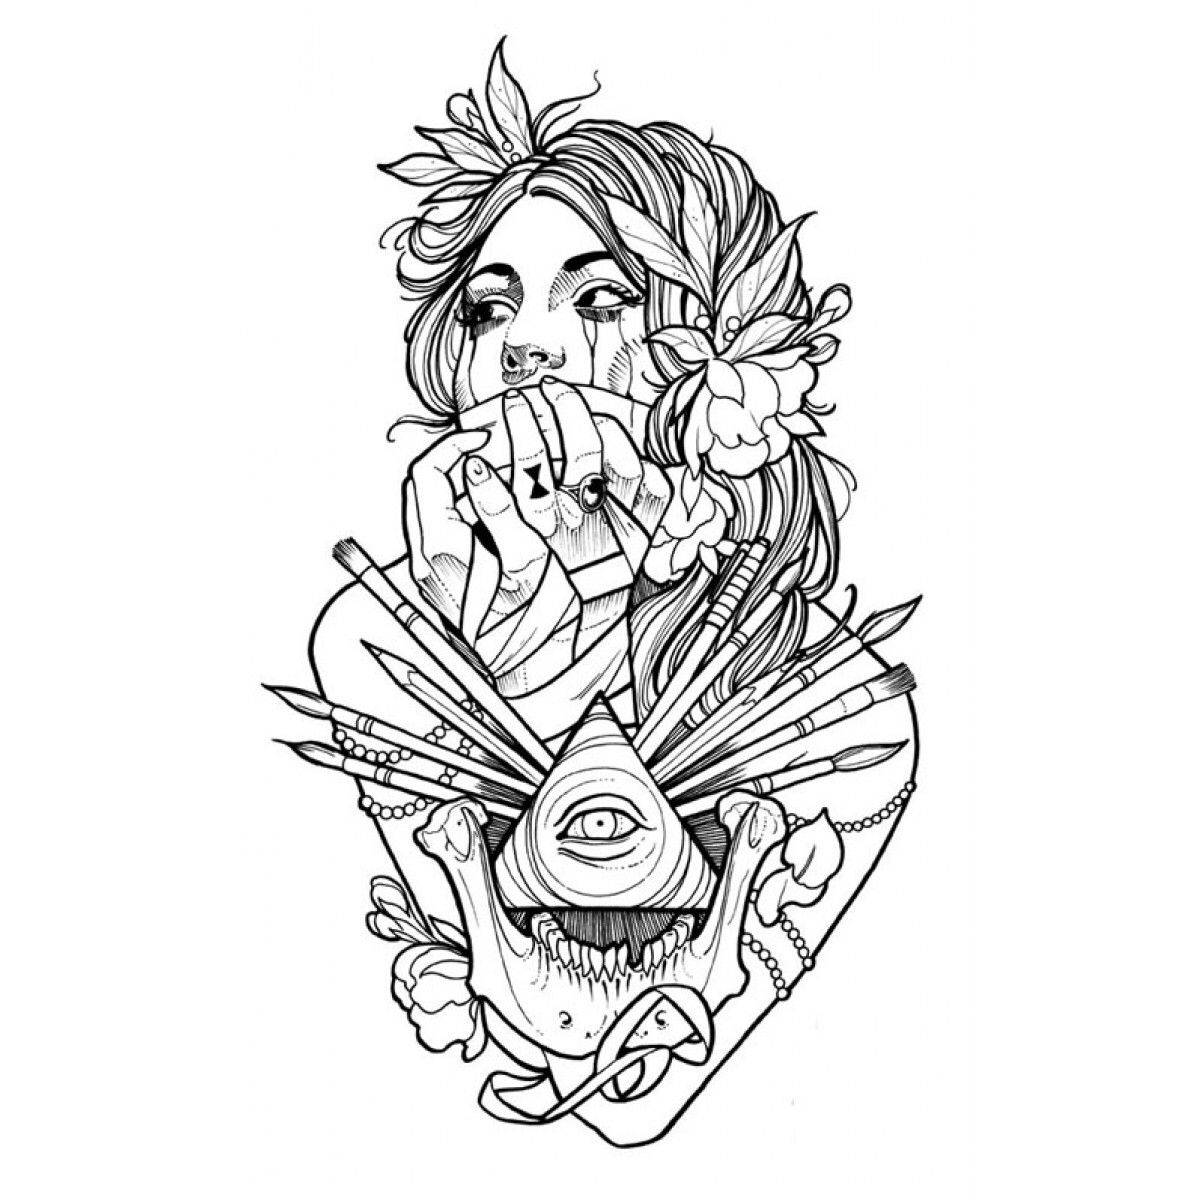 chicano art coloring pages gangster chicano coloring pages jesyscioblin chicano art coloring pages